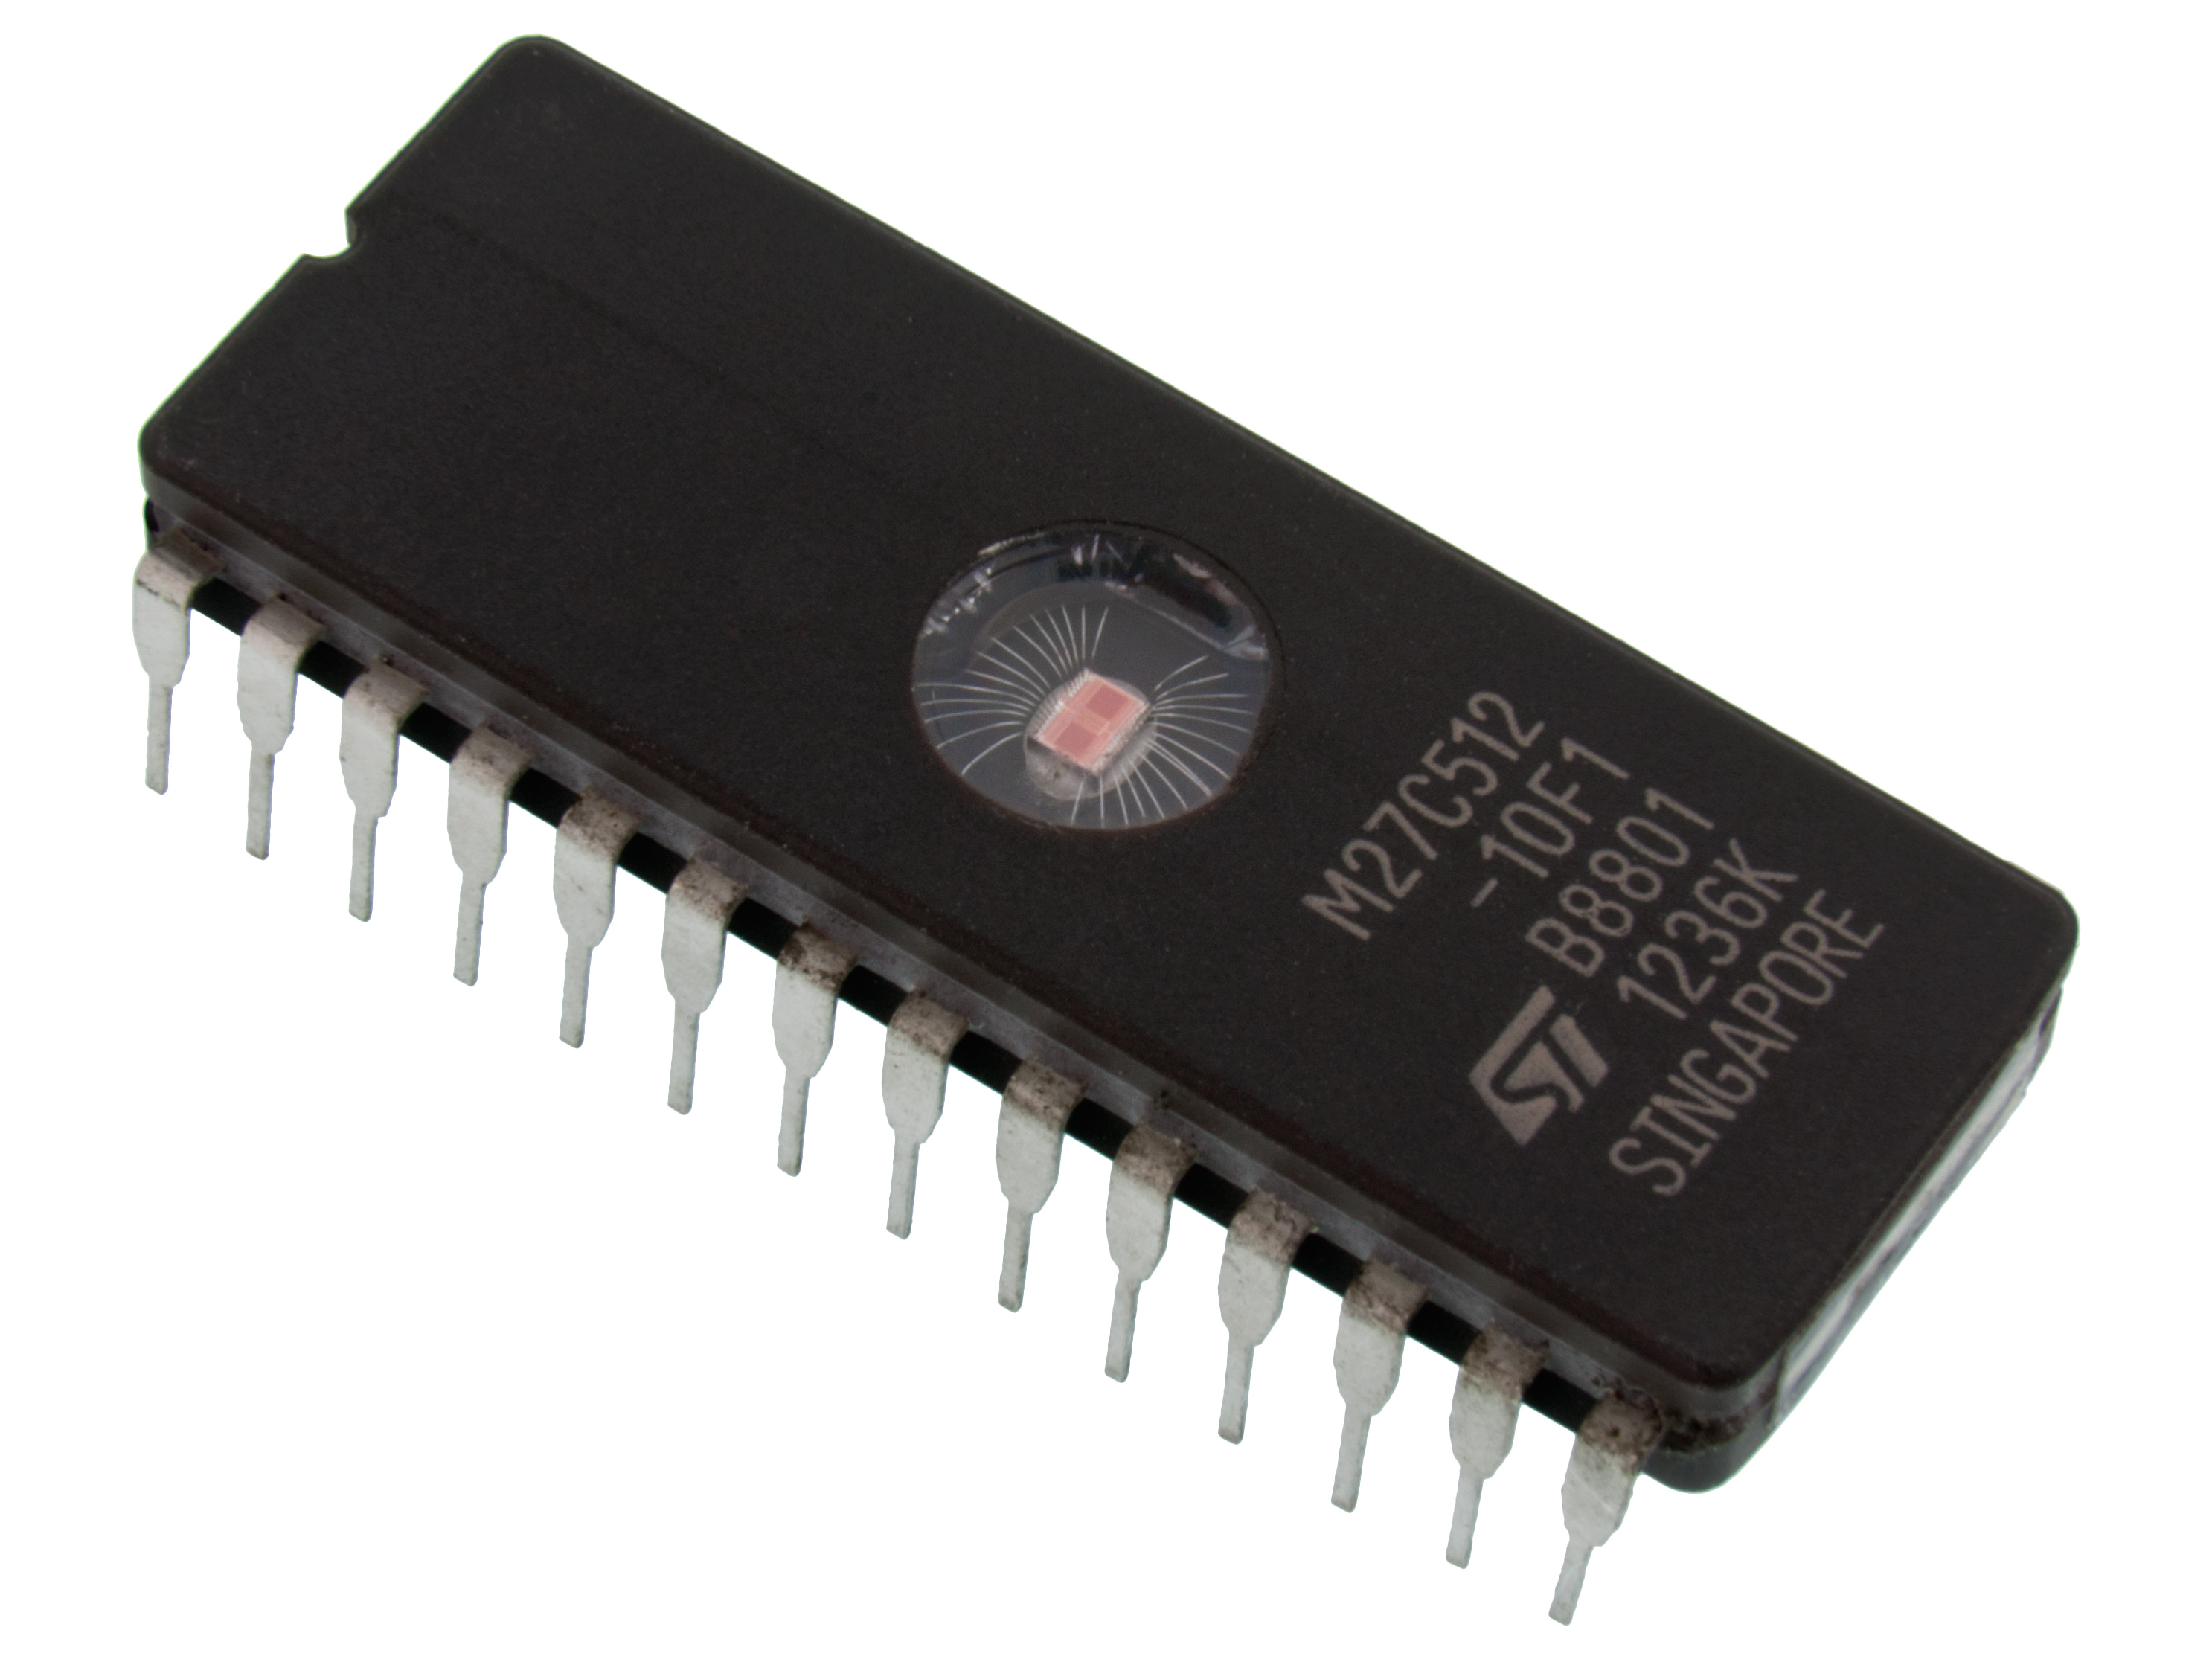 Buy 27c512 120 Dip 28w Eprom 512kbit At The Right Price Electrokit Where To Integrated Circuit Home Circuits Digital Ic Memory